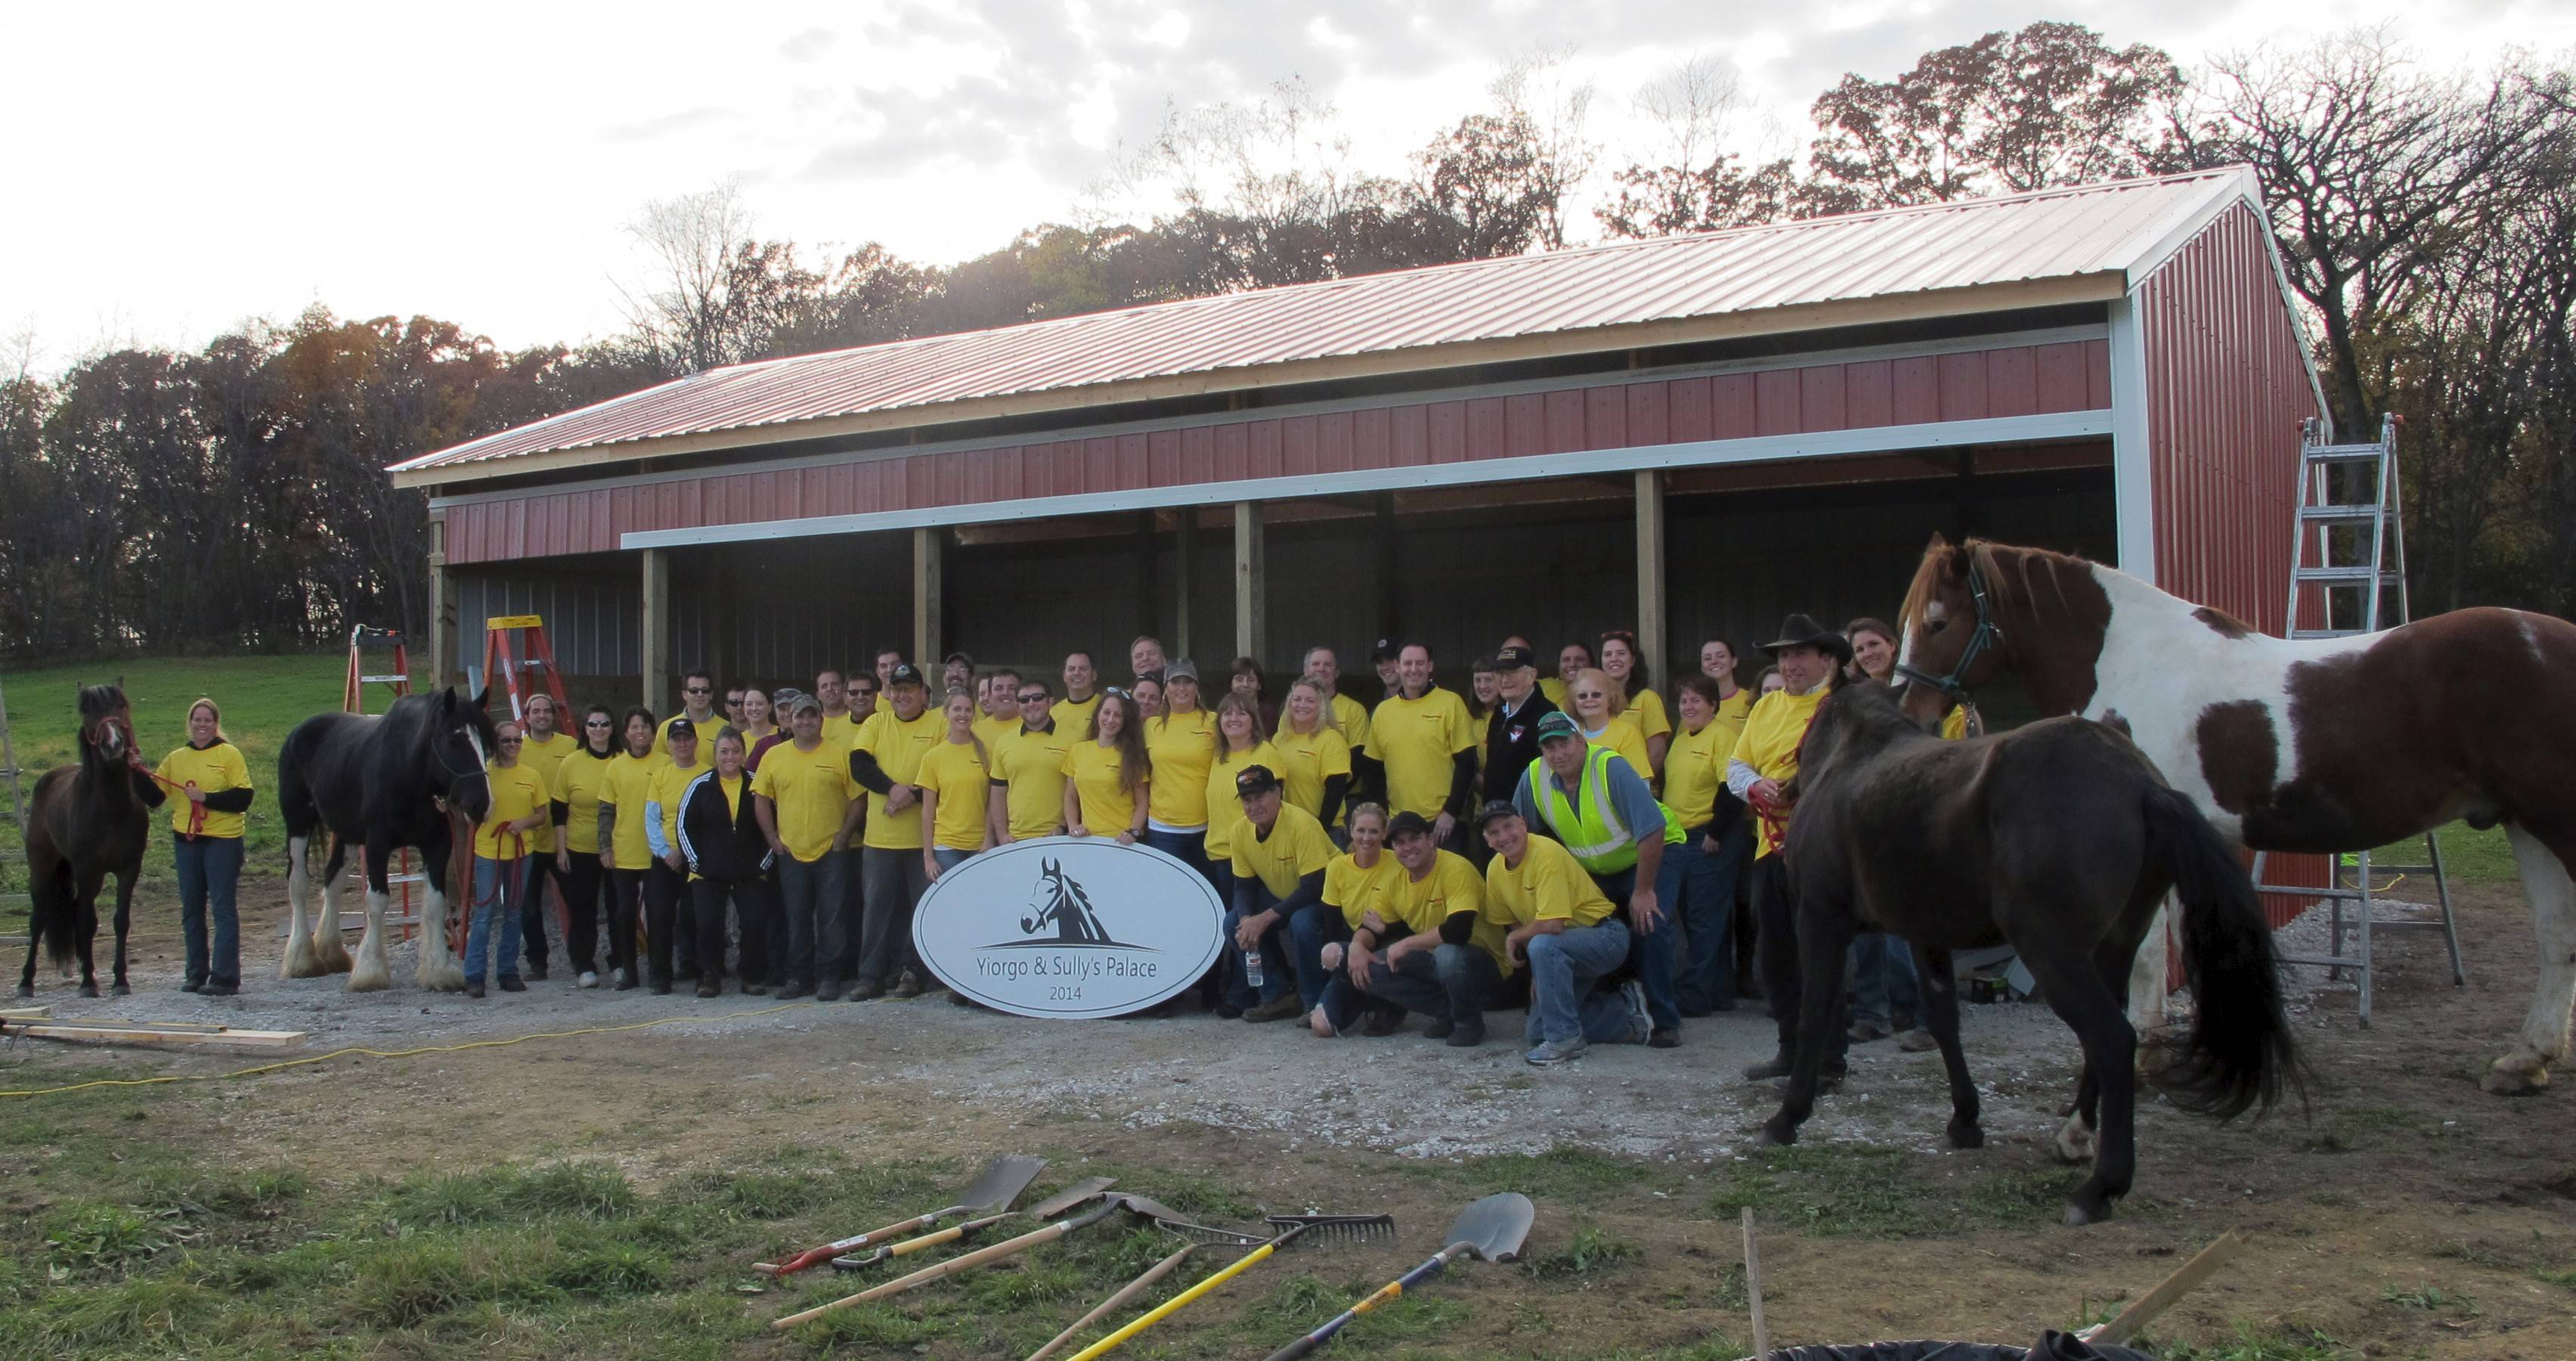 About 50 workers from various companies helped to build a shed at BraveHearts' Harvard facility to shelter up to 15 horses.